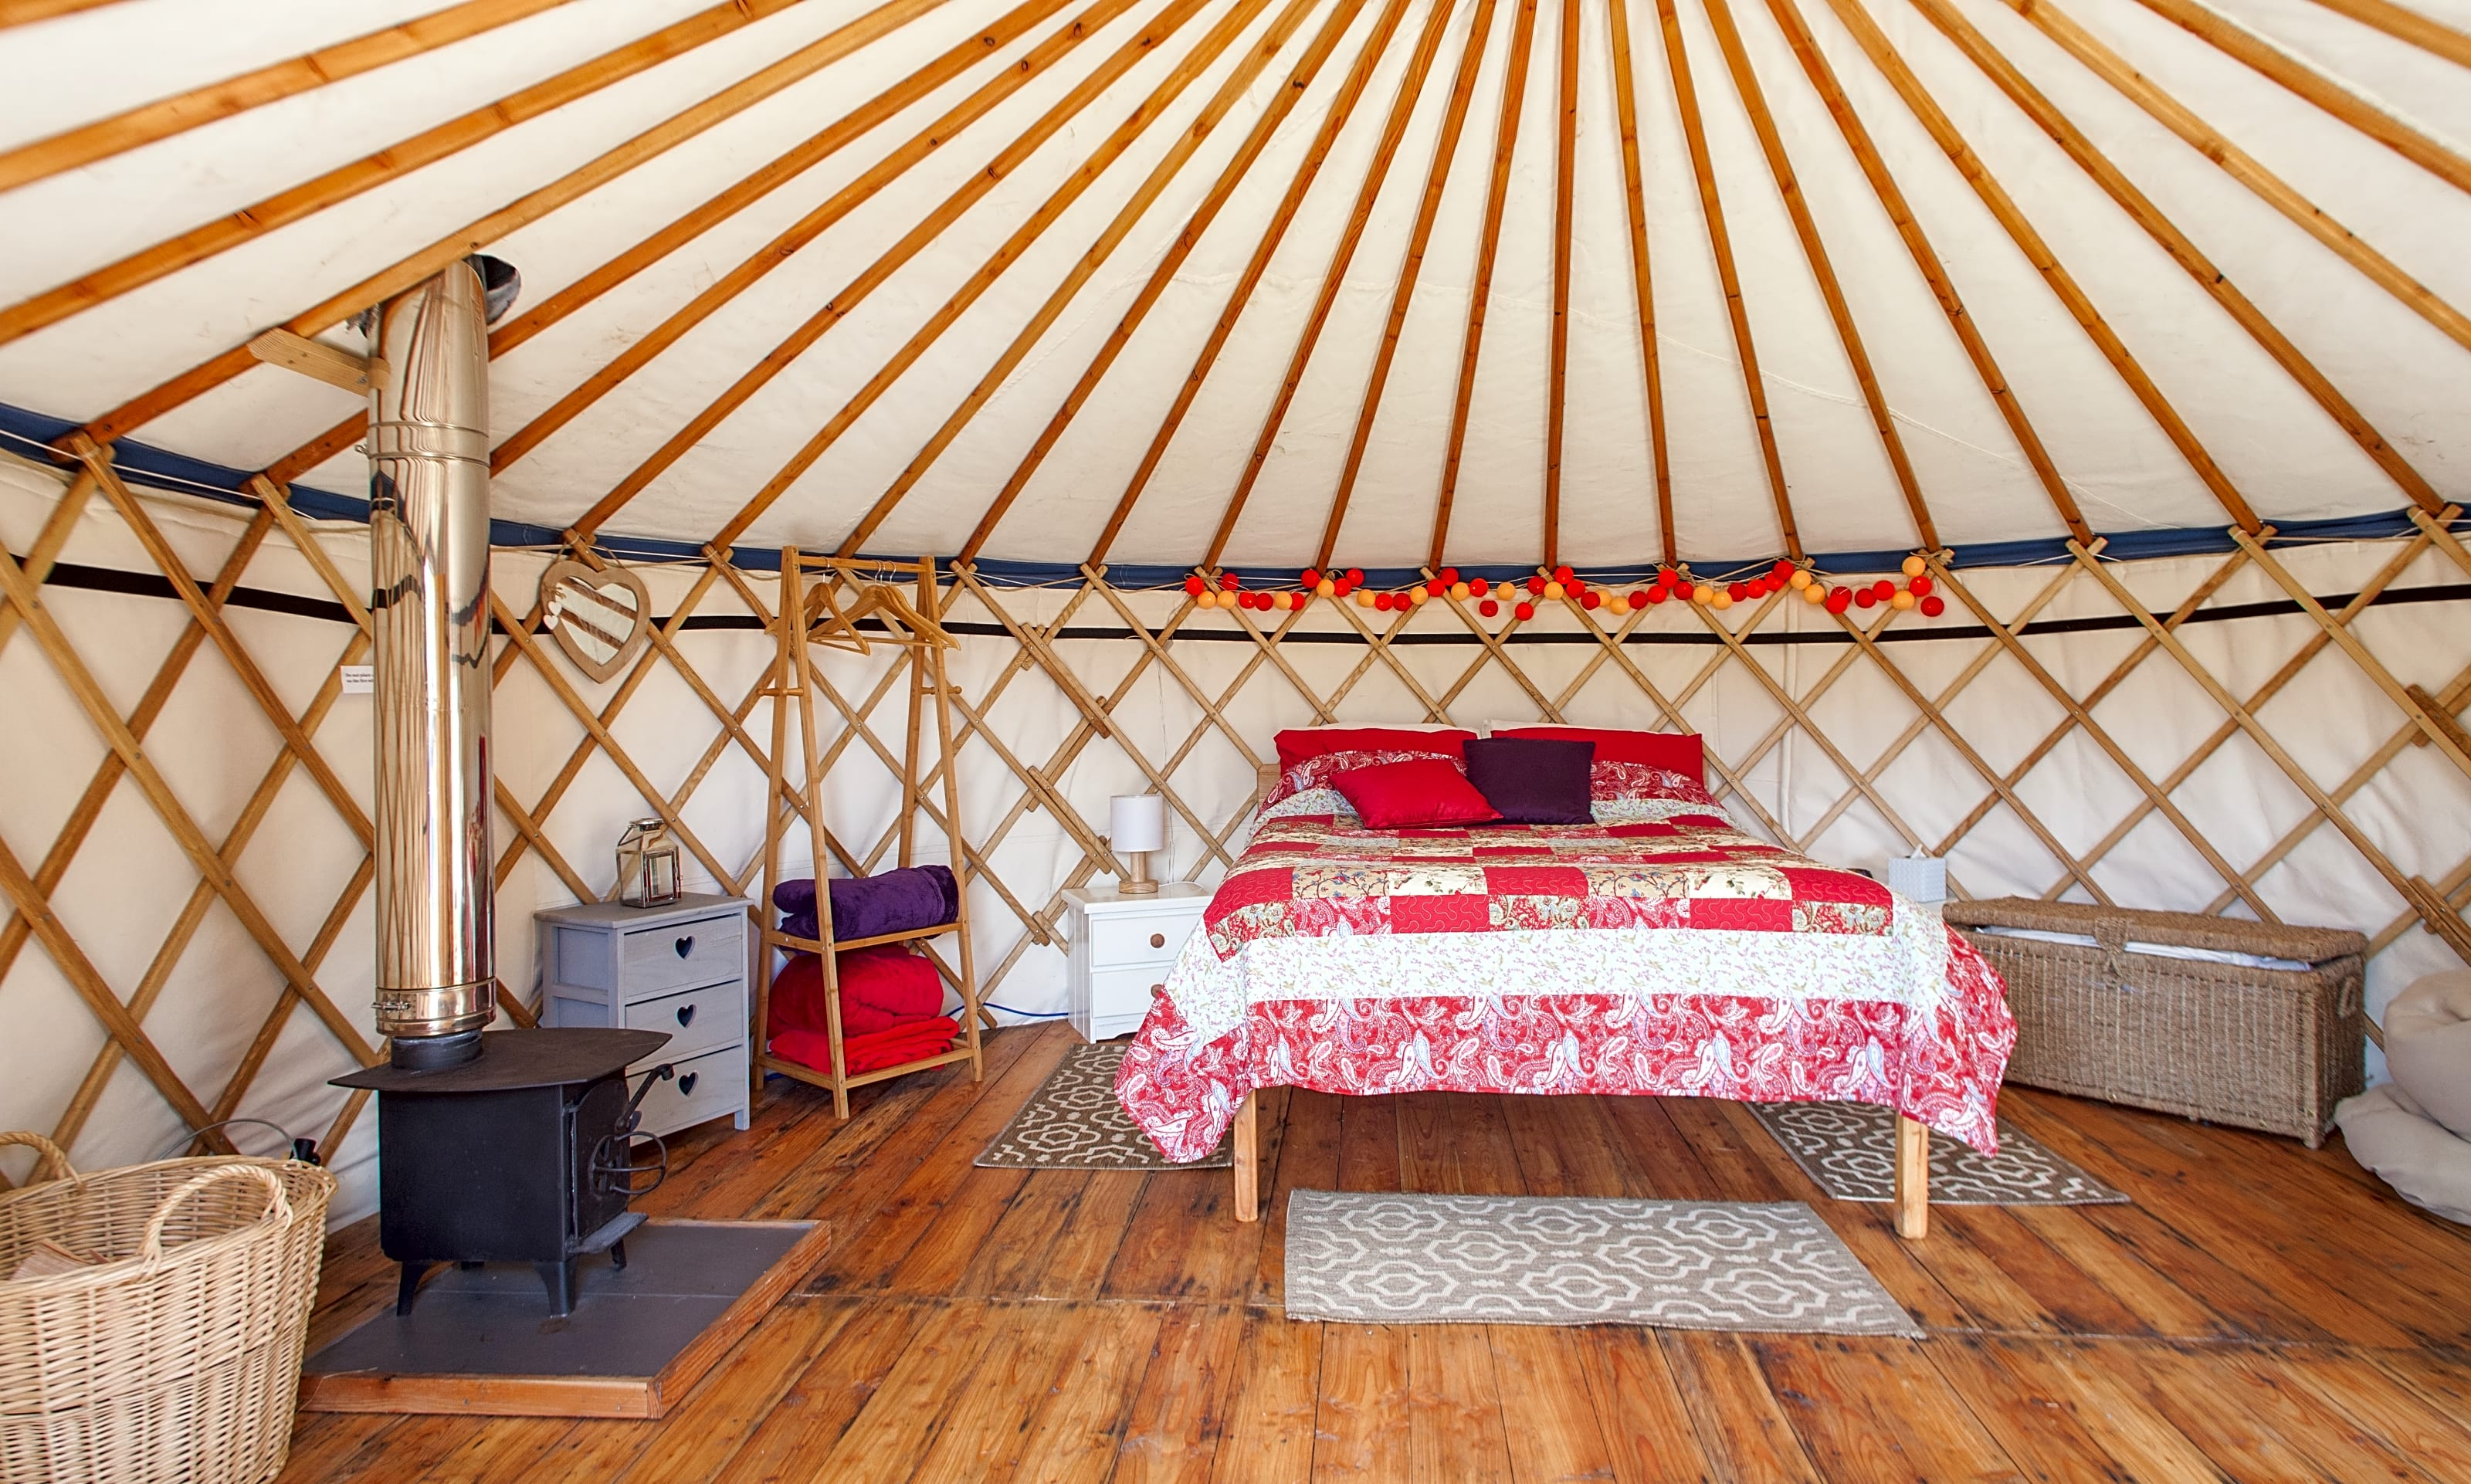 Fron Farm Yurt Retreat, Whitland, -, Updated 2019 prices, - Pitchup®